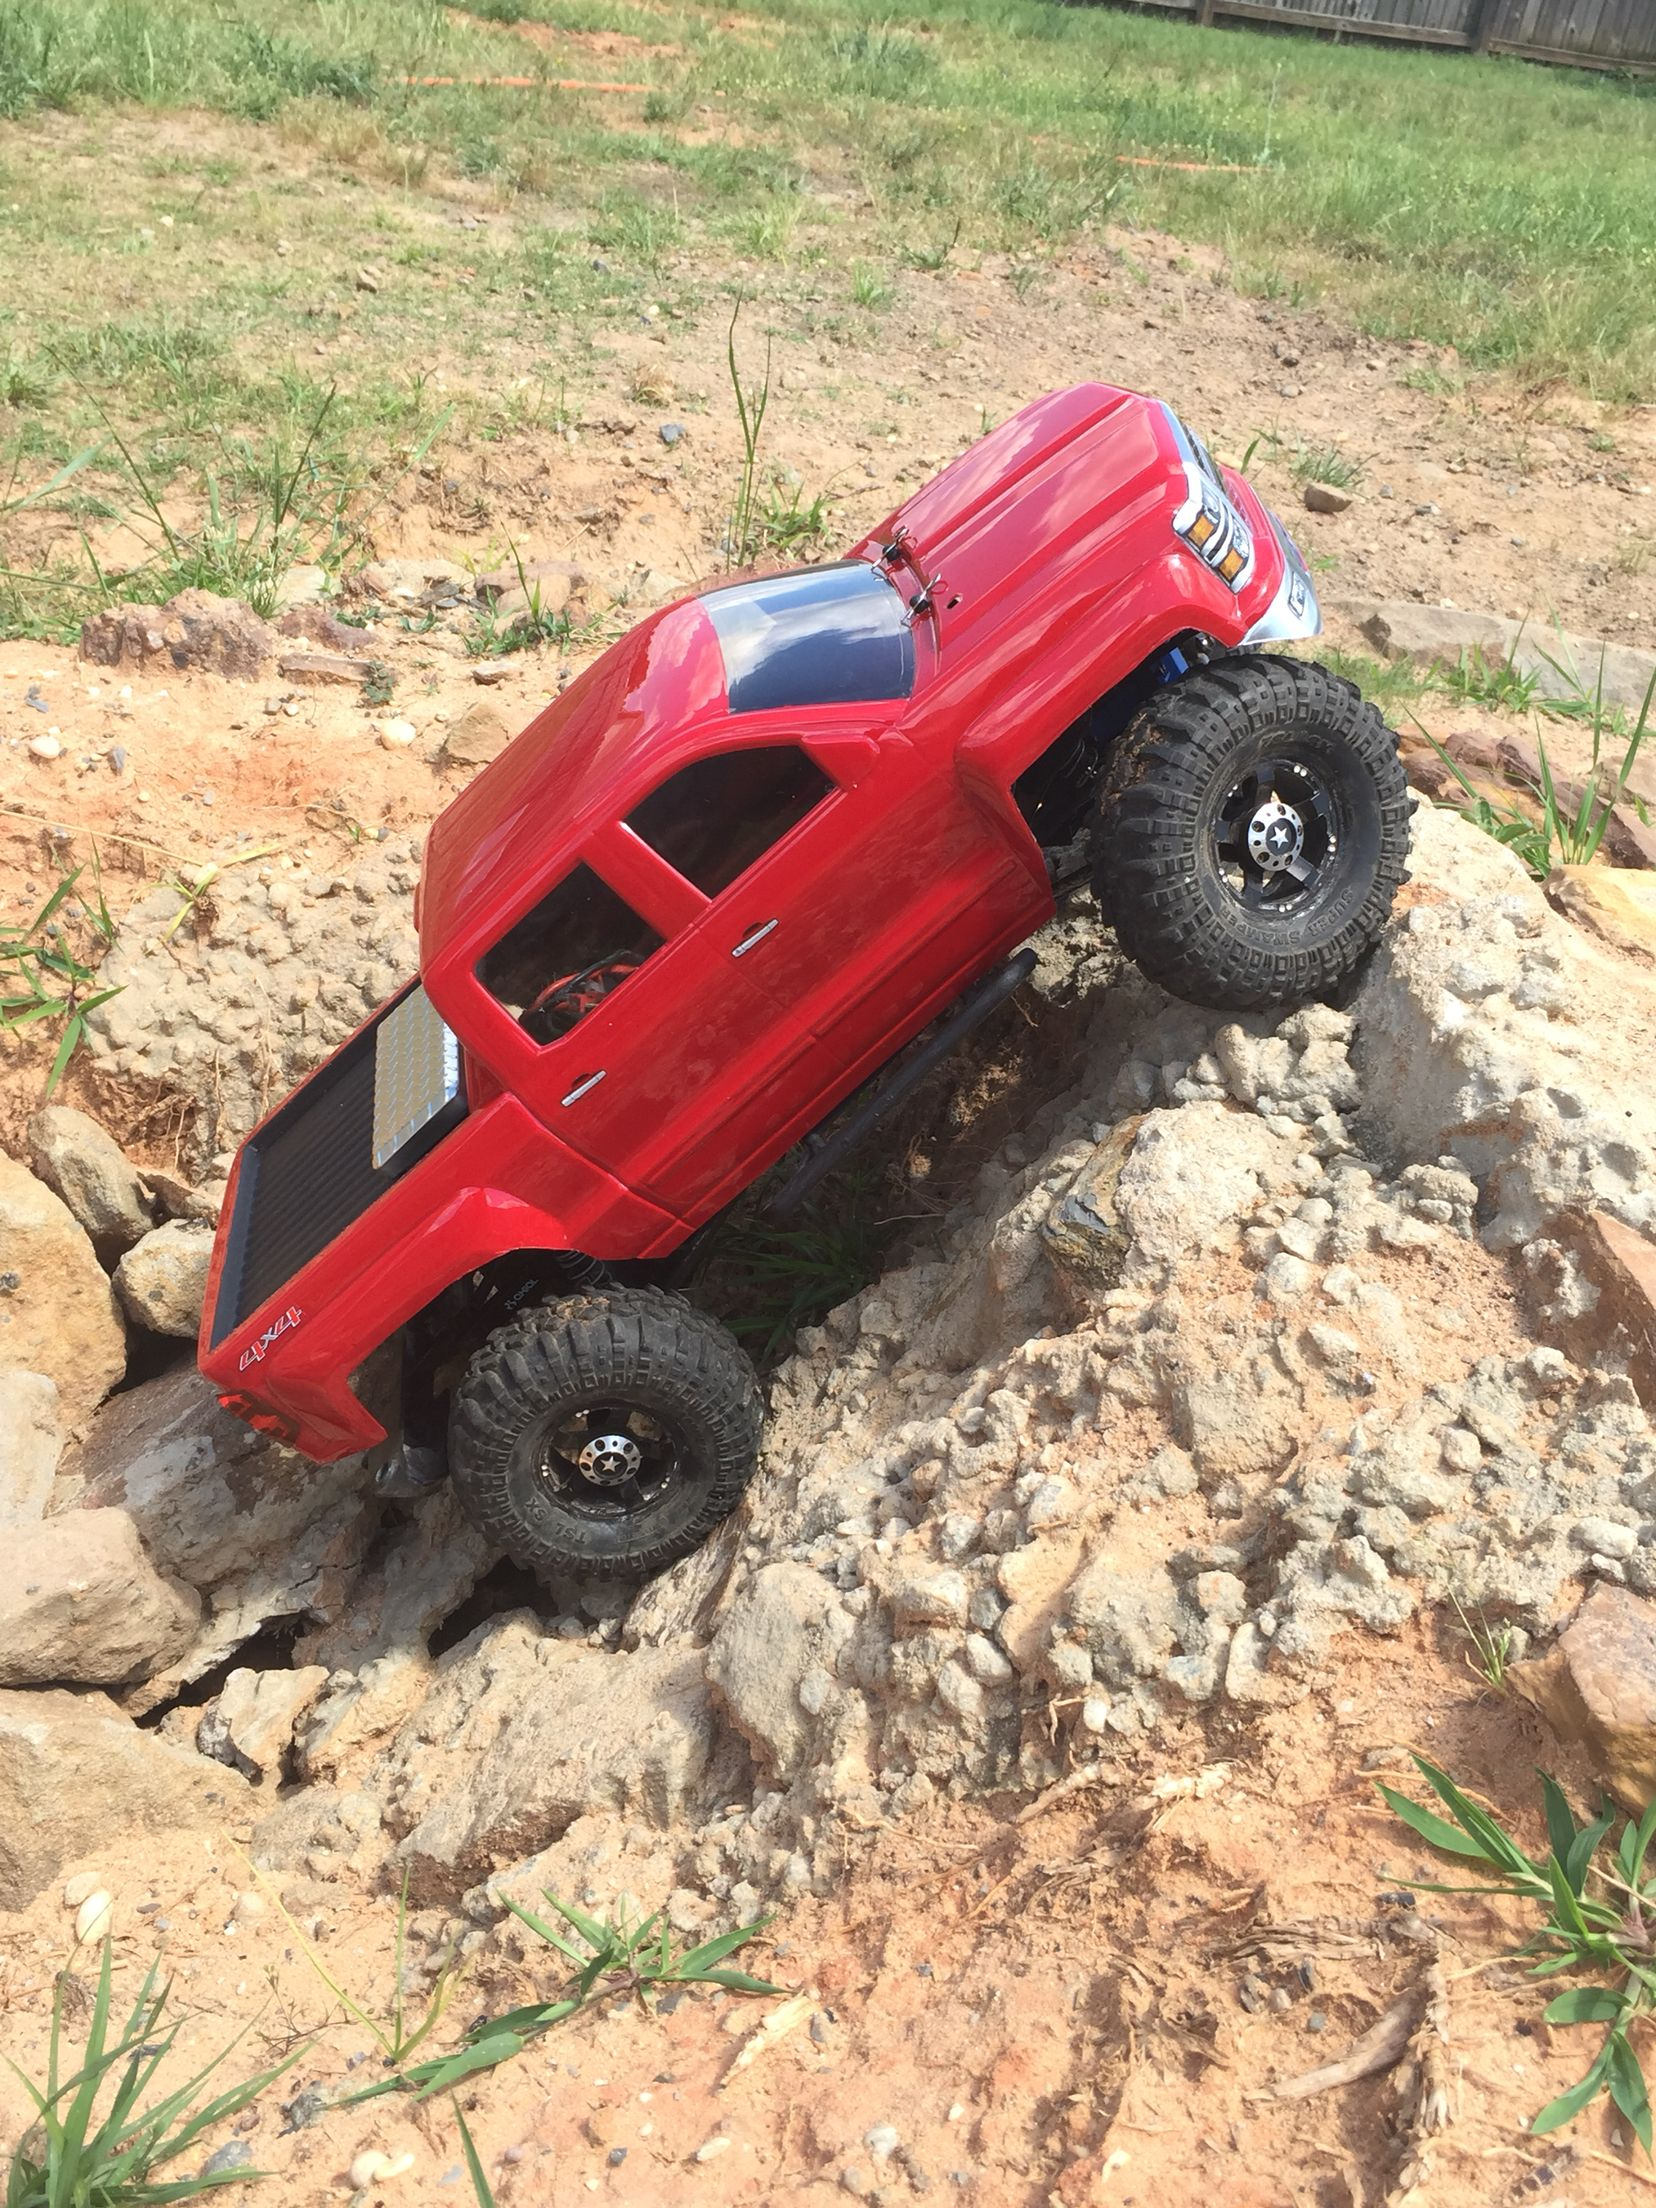 Axial Scx10 Rc With Red 2014 Chevrolet Silverado Body Added Tool Box Bedliner Super Swappers Xls 1 9 Rockstar Rc Cars And Trucks Custom Cars Offroad Jeep